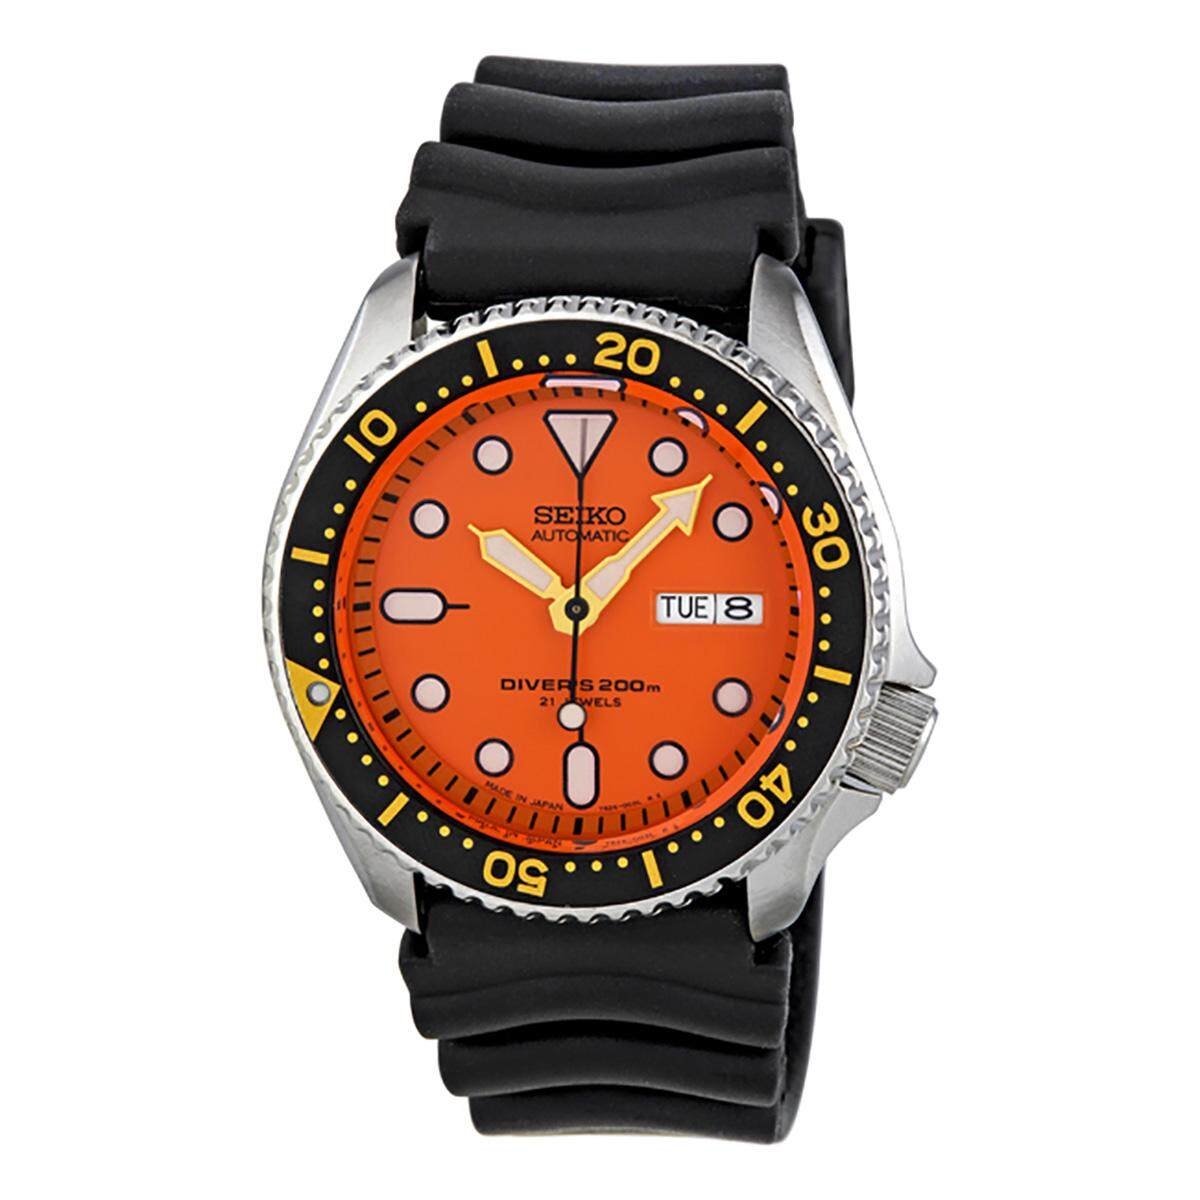 Seiko Watch Automatic Diver S Black Stainless Steel Case Rubber Strap Mens Japan Skx011J1 ถูก